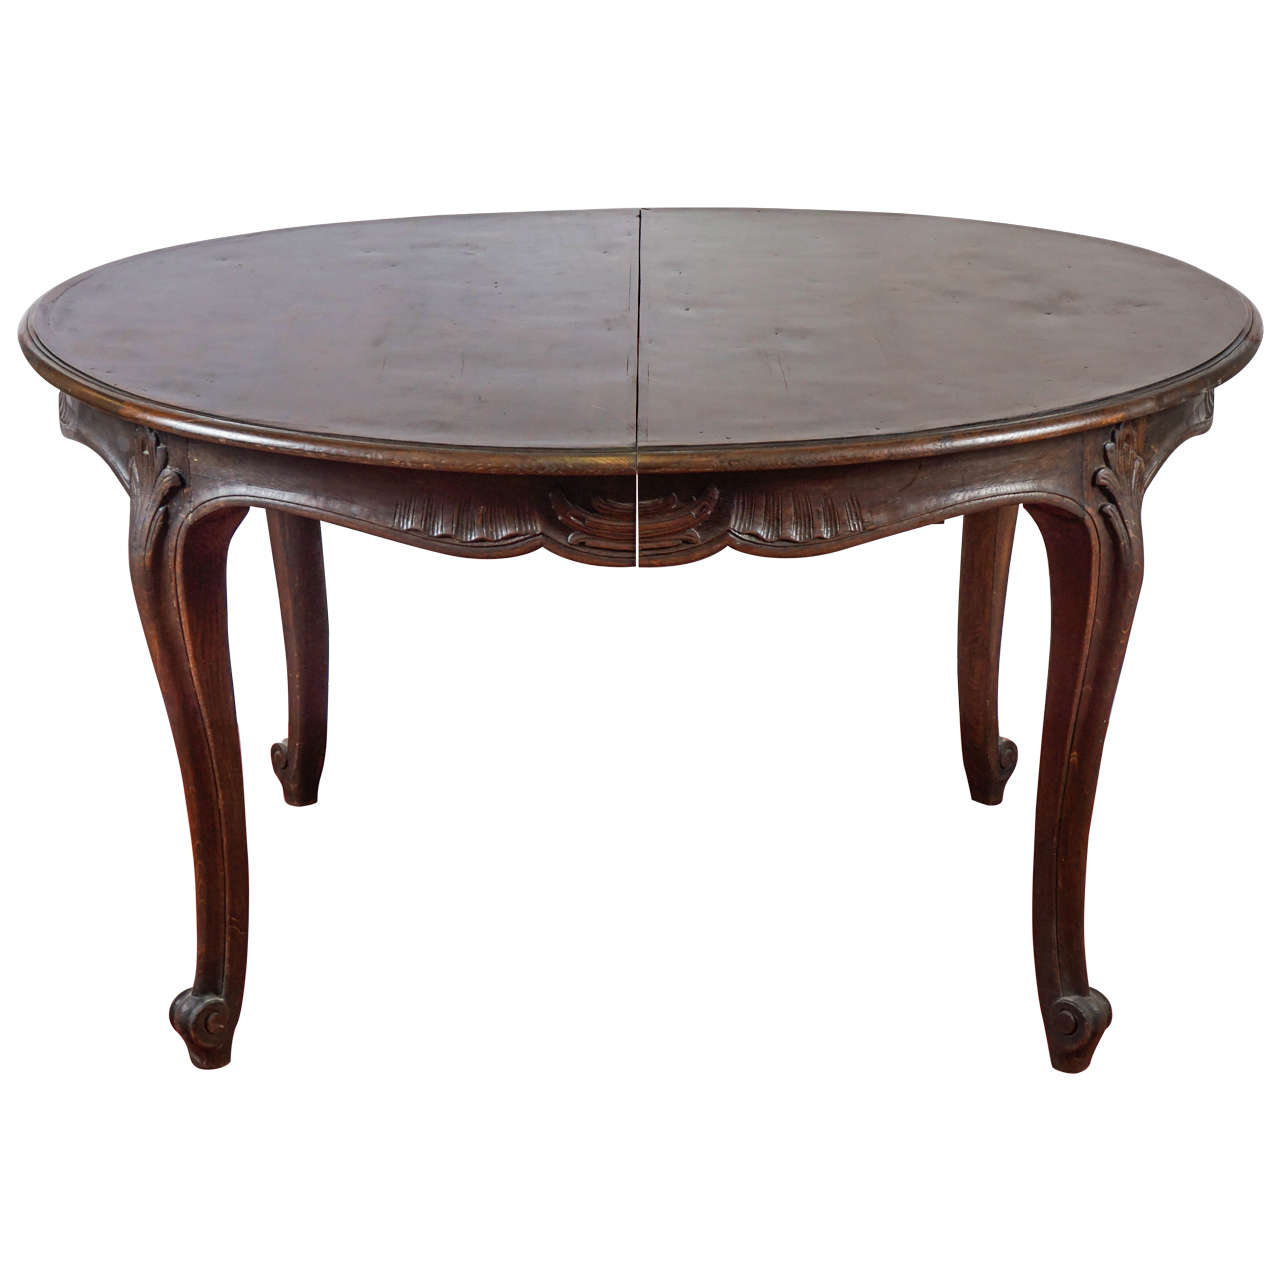 Louis xv style oval dining table for sale at 1stdibs for Dining room table styles